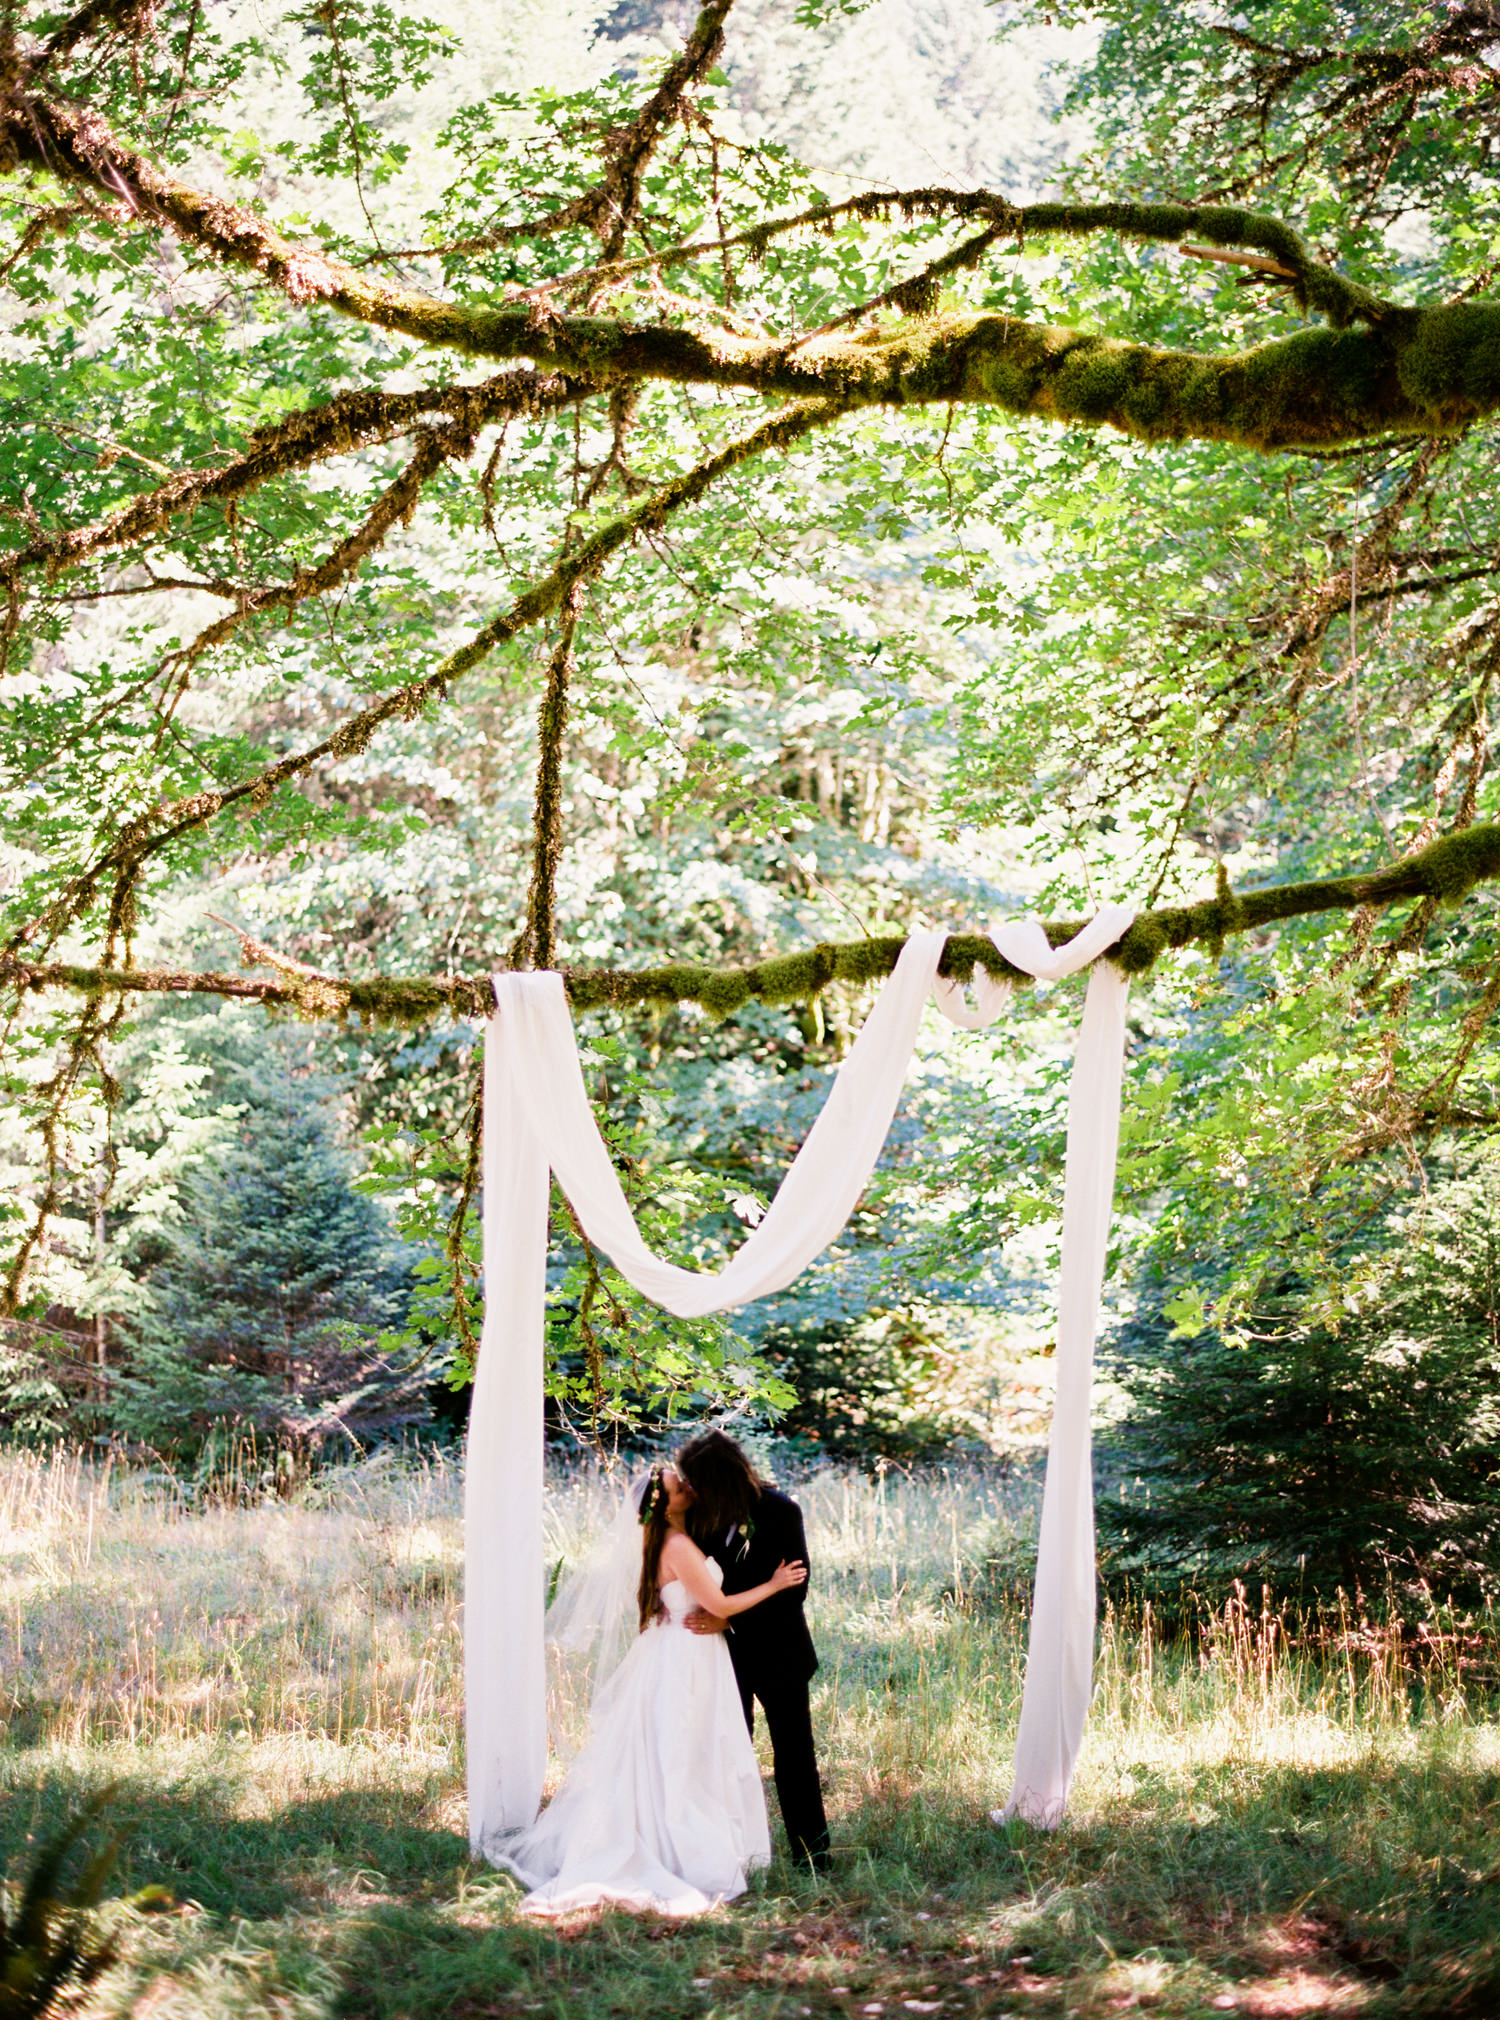 ryan-flynn-best-wedding-photography-2015-seattle-film-photographer-0086.JPG